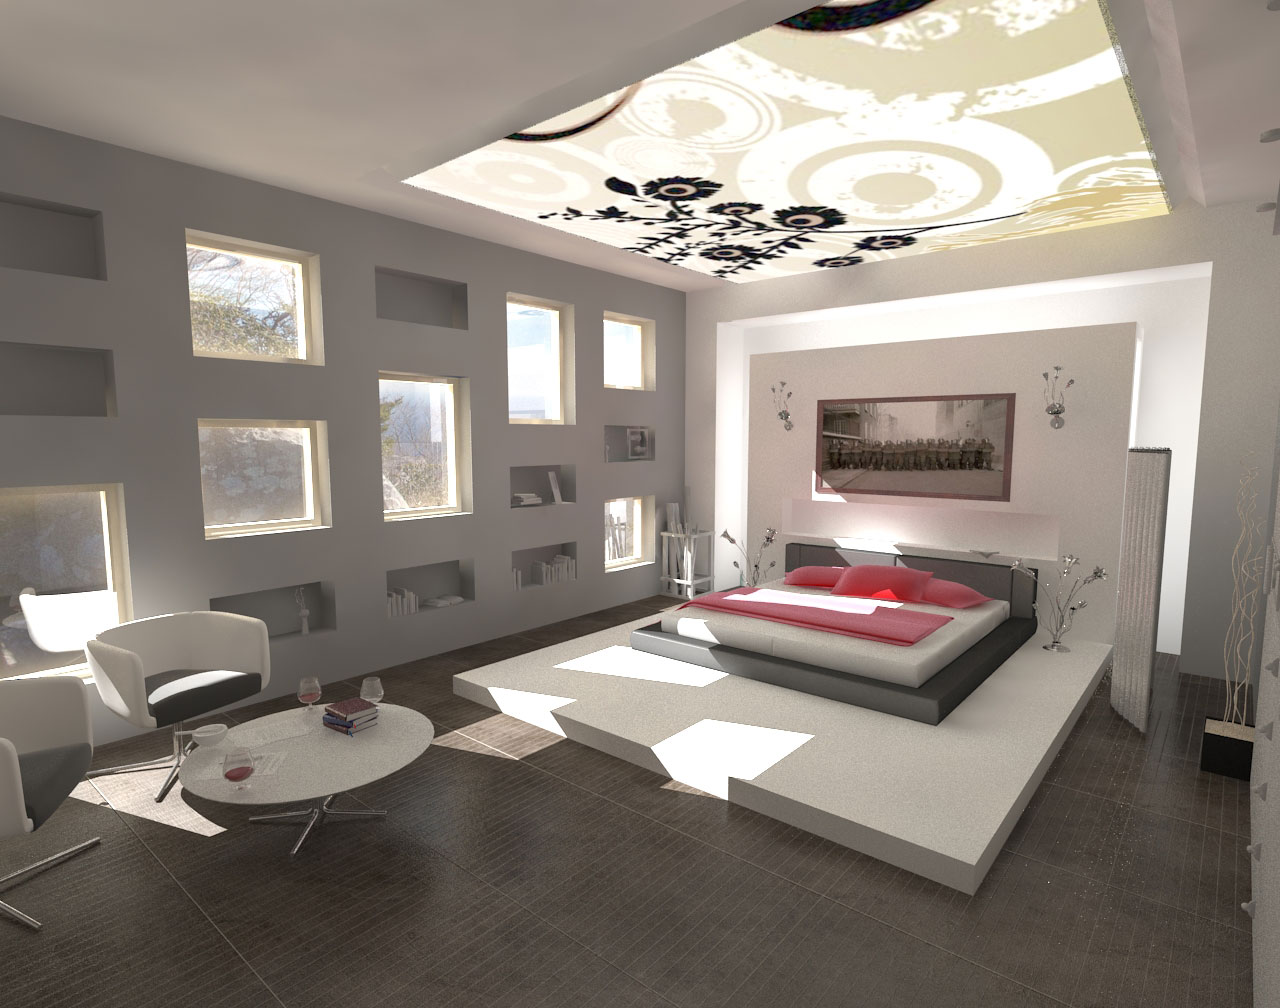 Decorations minimalist design modern bedroom interior for Modern minimalist house interior design